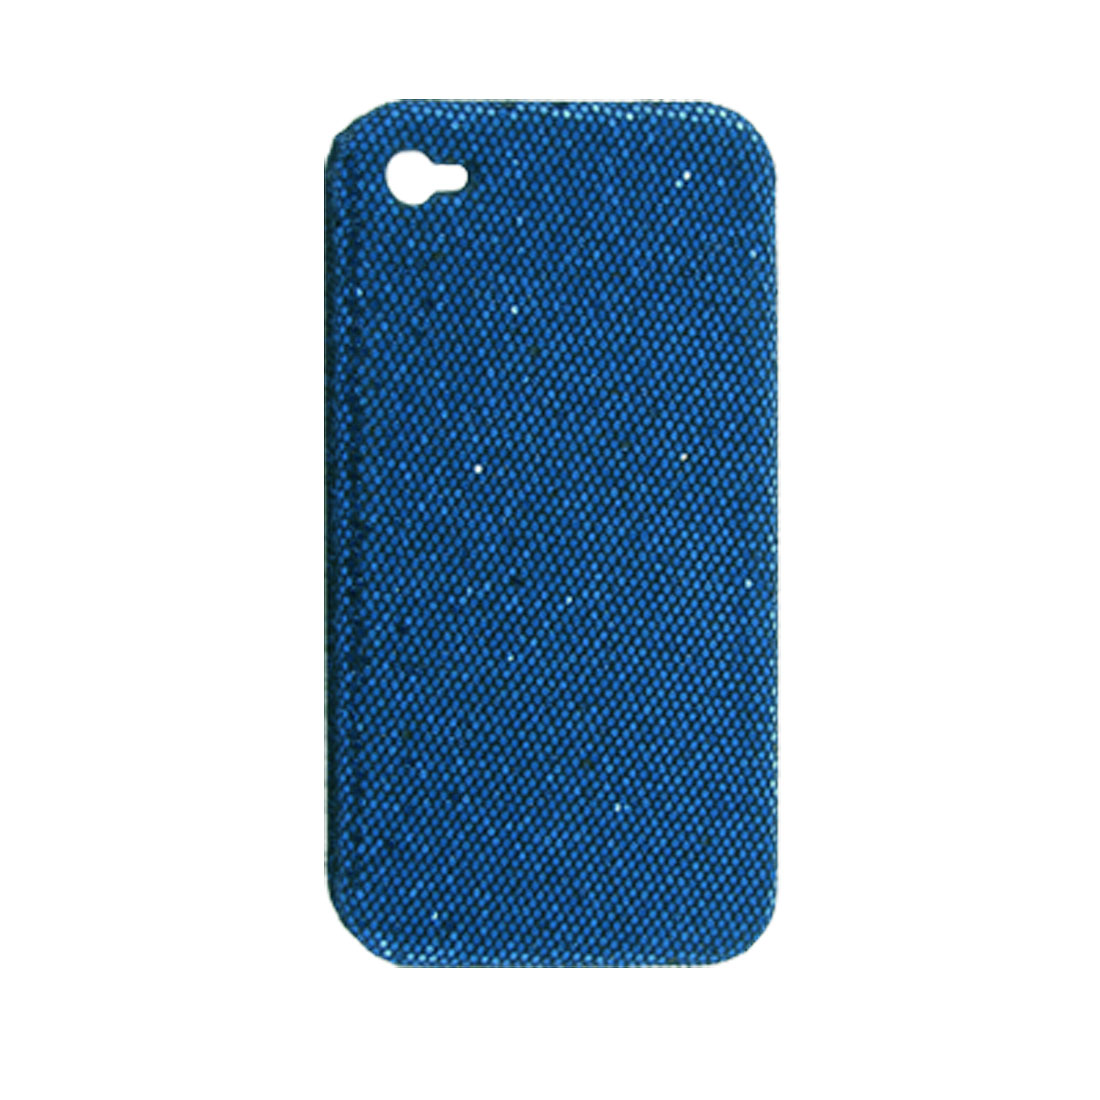 Blue Glittery Protective Hard Guard Case for iPhone 4 4G